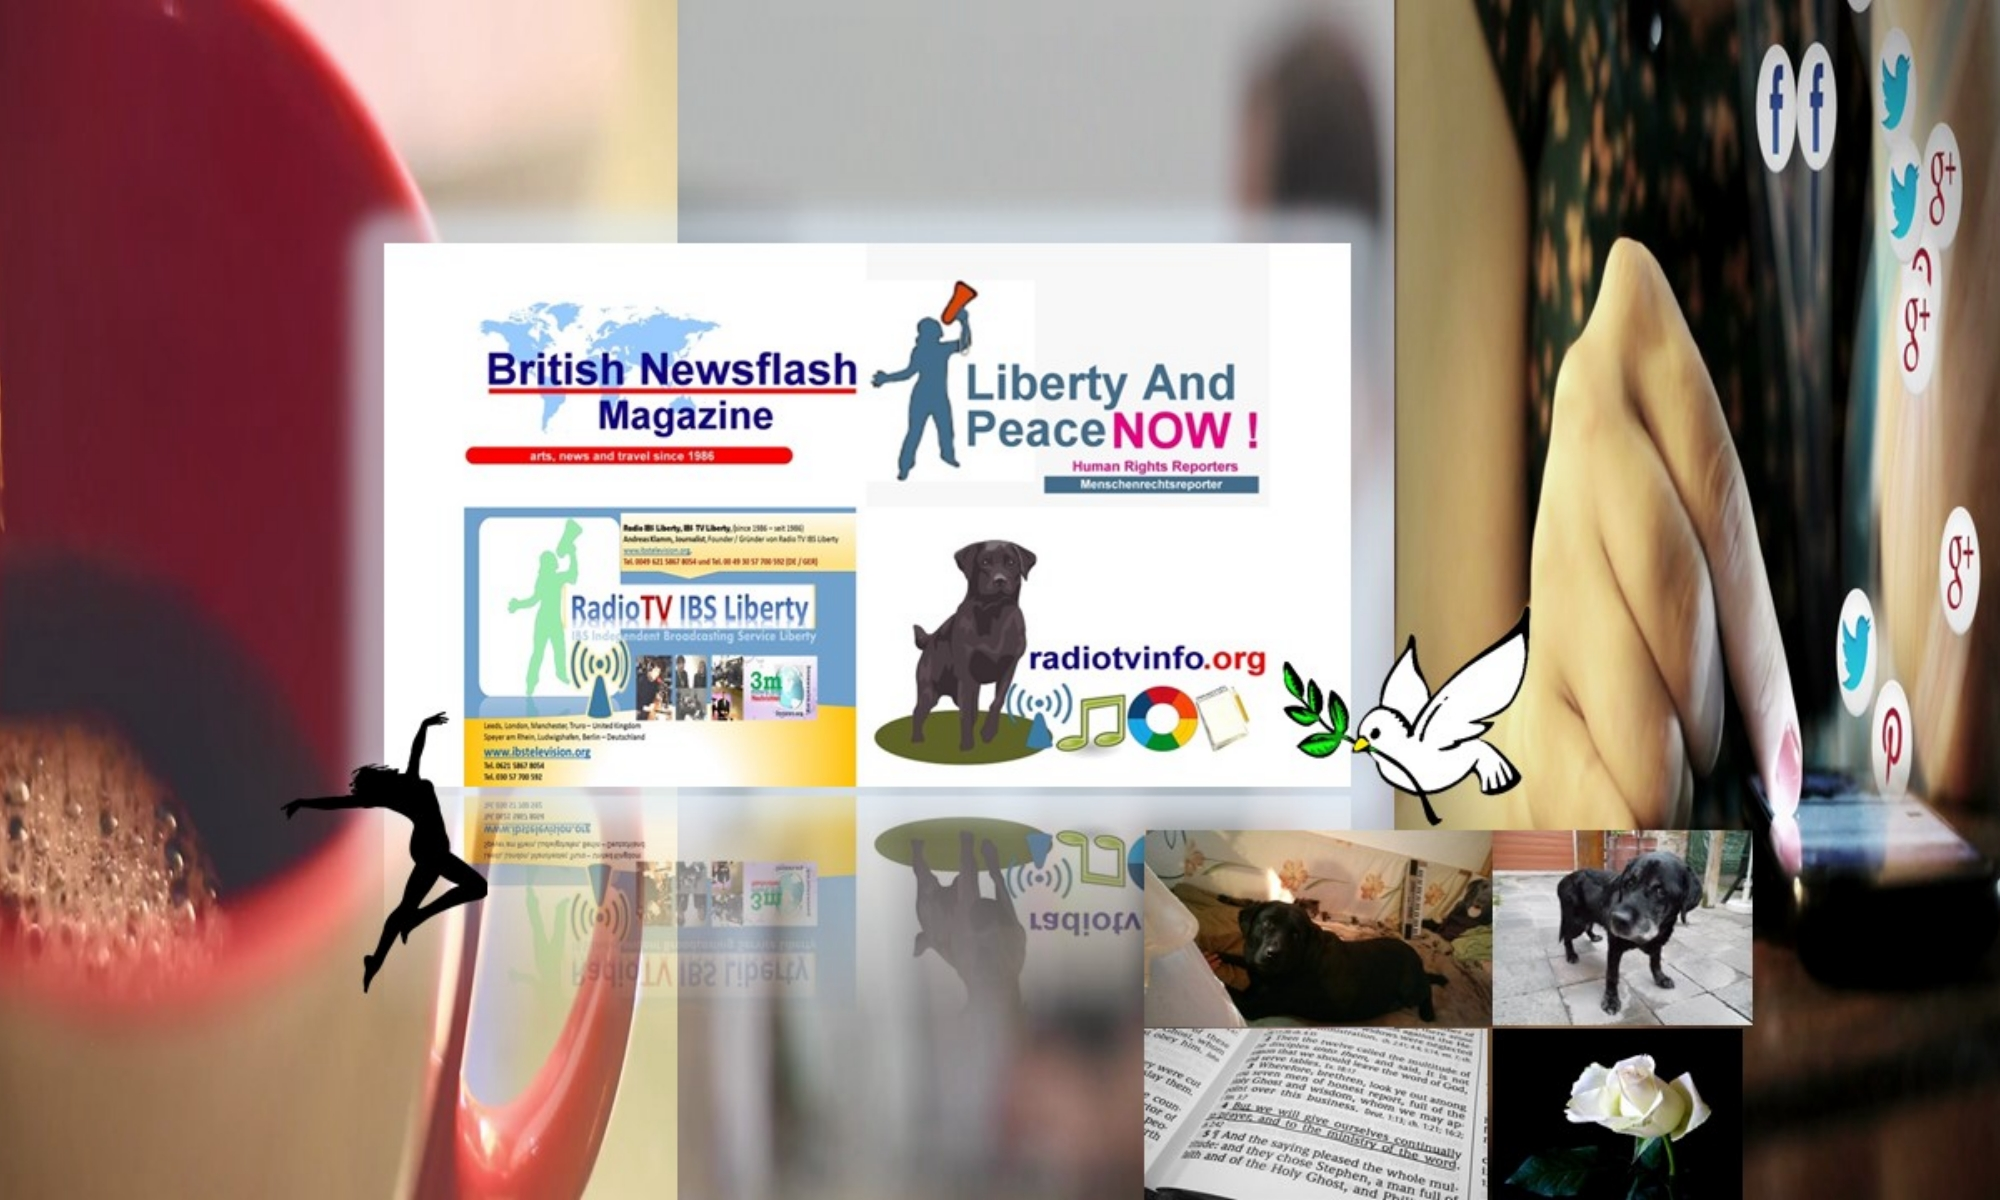 British Newsflash Magazine - Liberty and Peace NOW - IBS Television Liberty